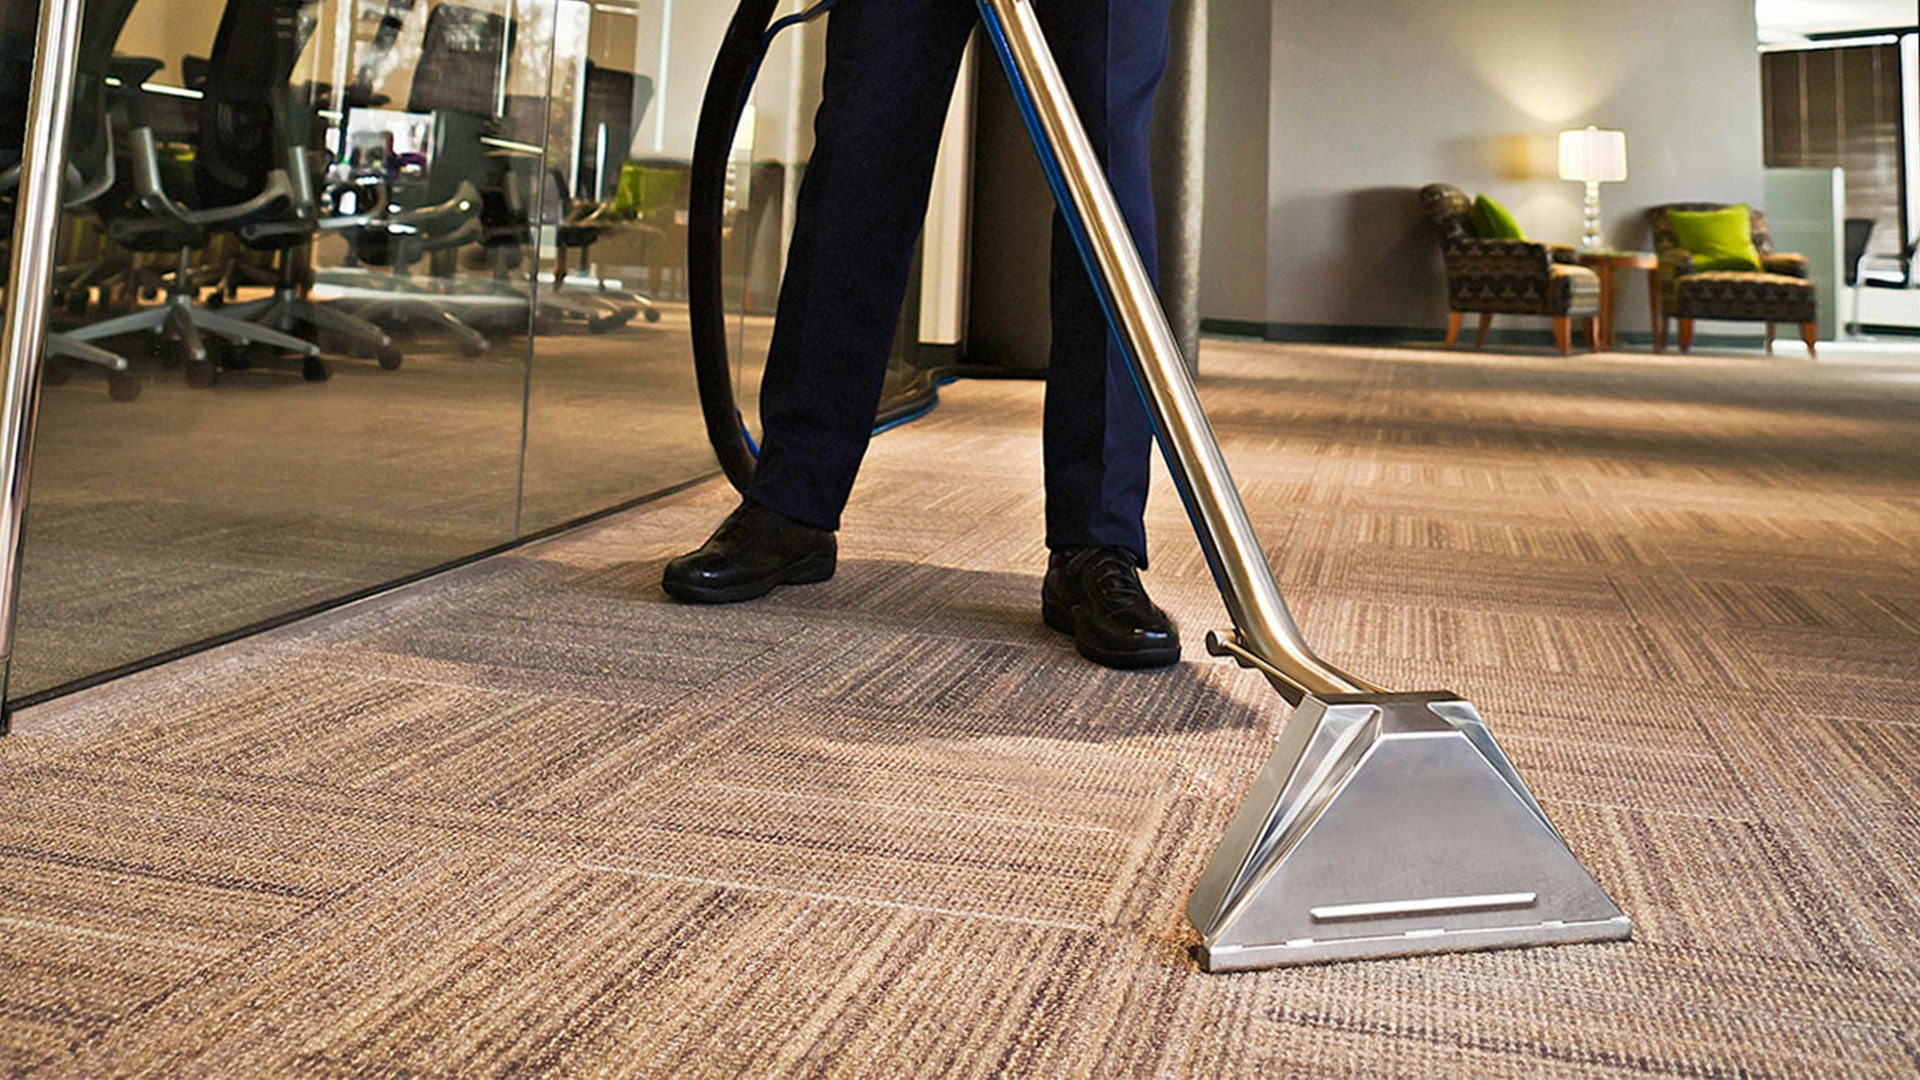 Commercial Carpet Cleaning | Woodland Cleaning Services, Janitorial  Services and Window Cleaning